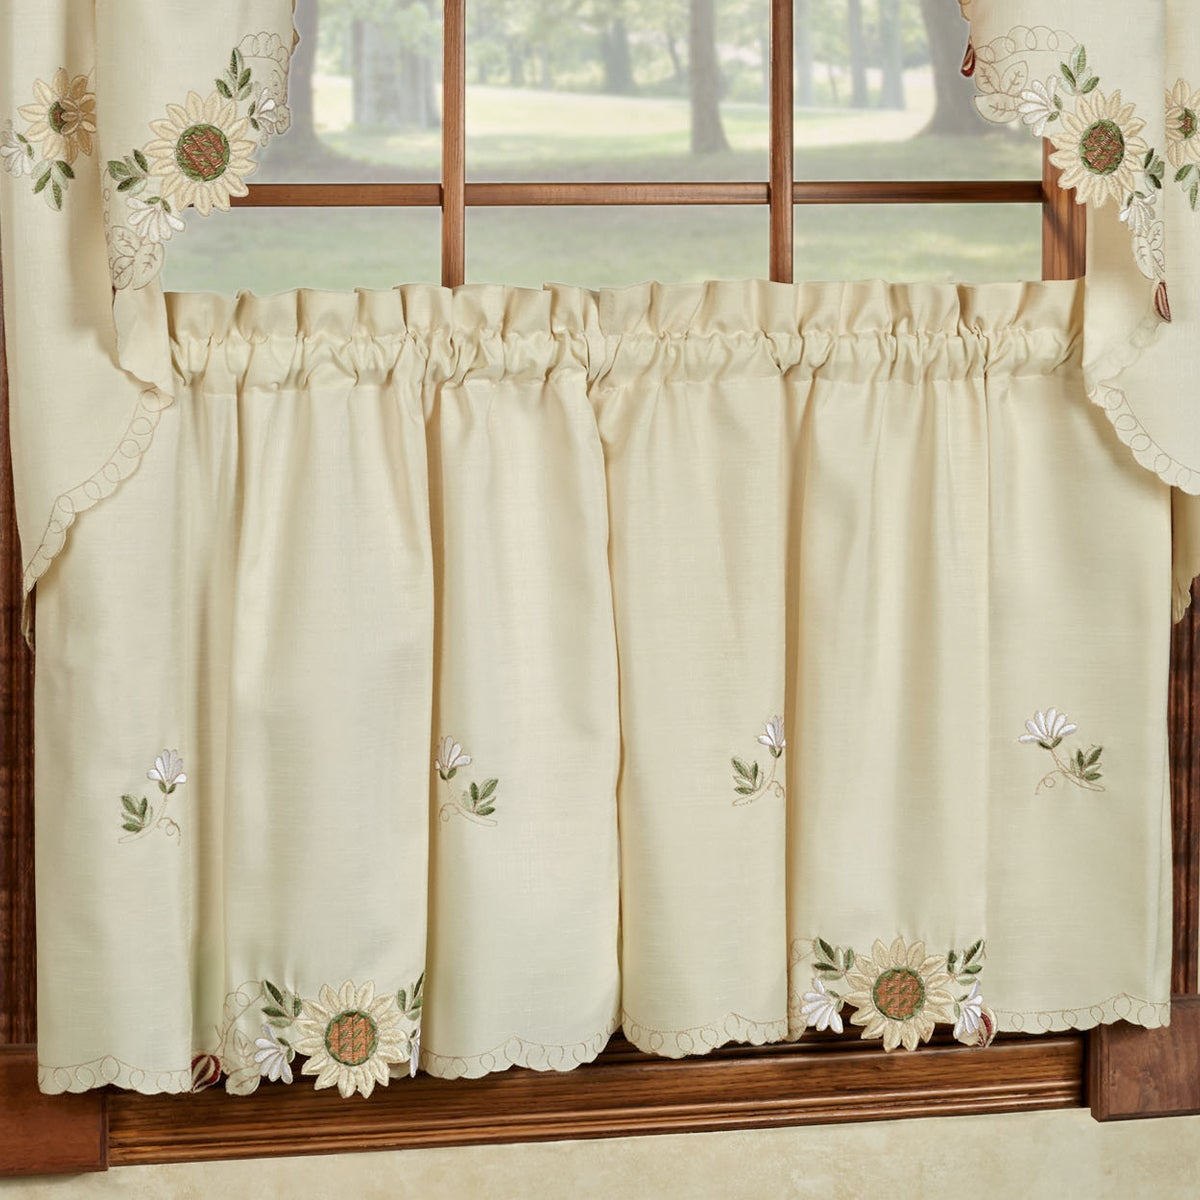 Shop Embroidered Sunflower Kitchen Curtains Separates  Tier, Swag And  Valance Options   Free Shipping On Orders Over $45   Overstock.com    10199186